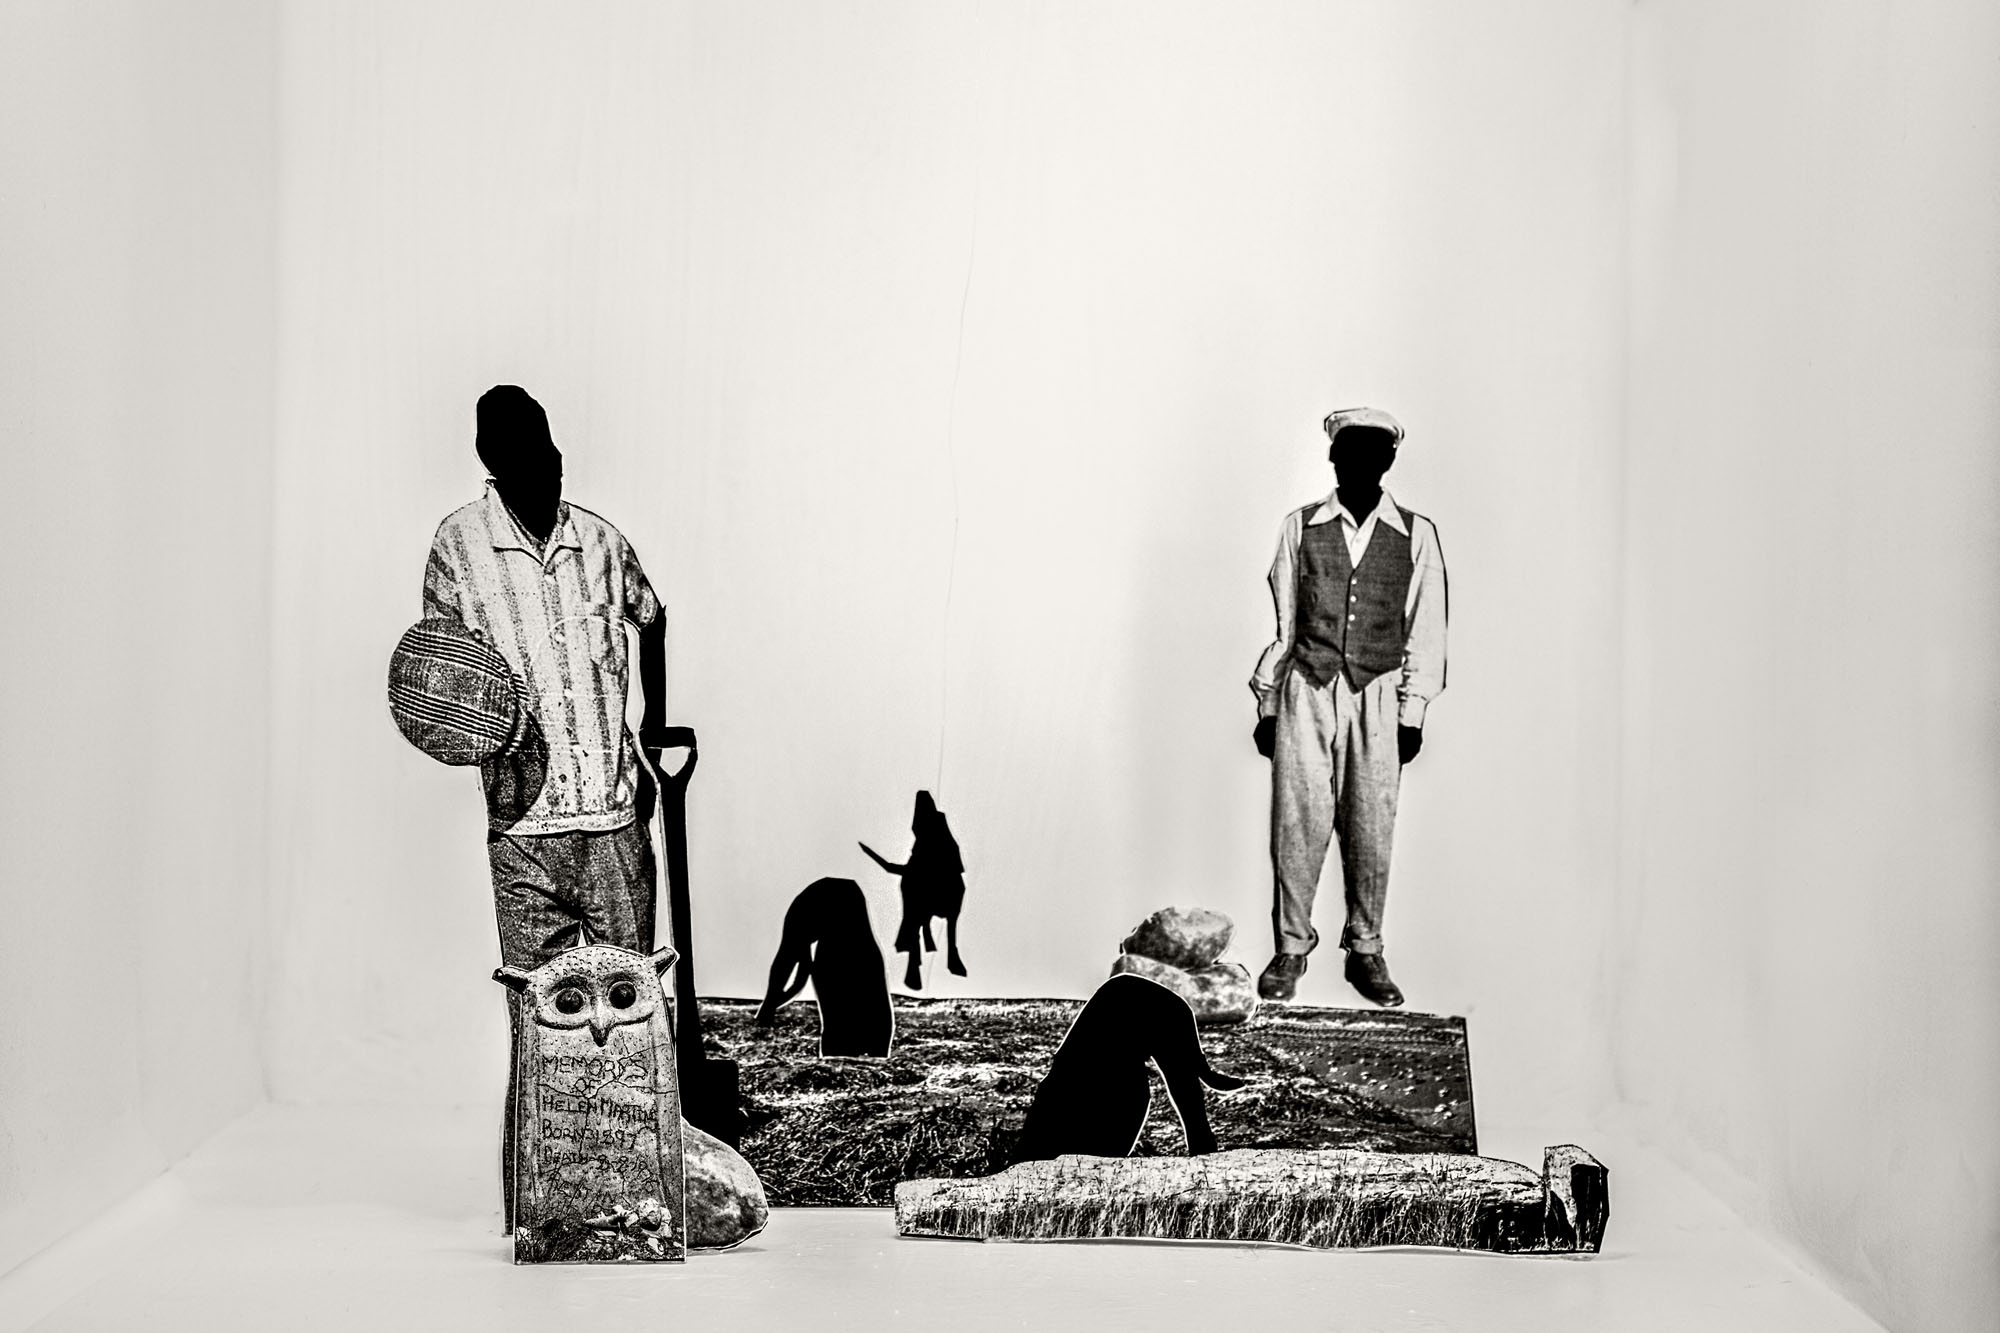 Lebohang_The nameless ones in the graves, Tell Tale, 2018